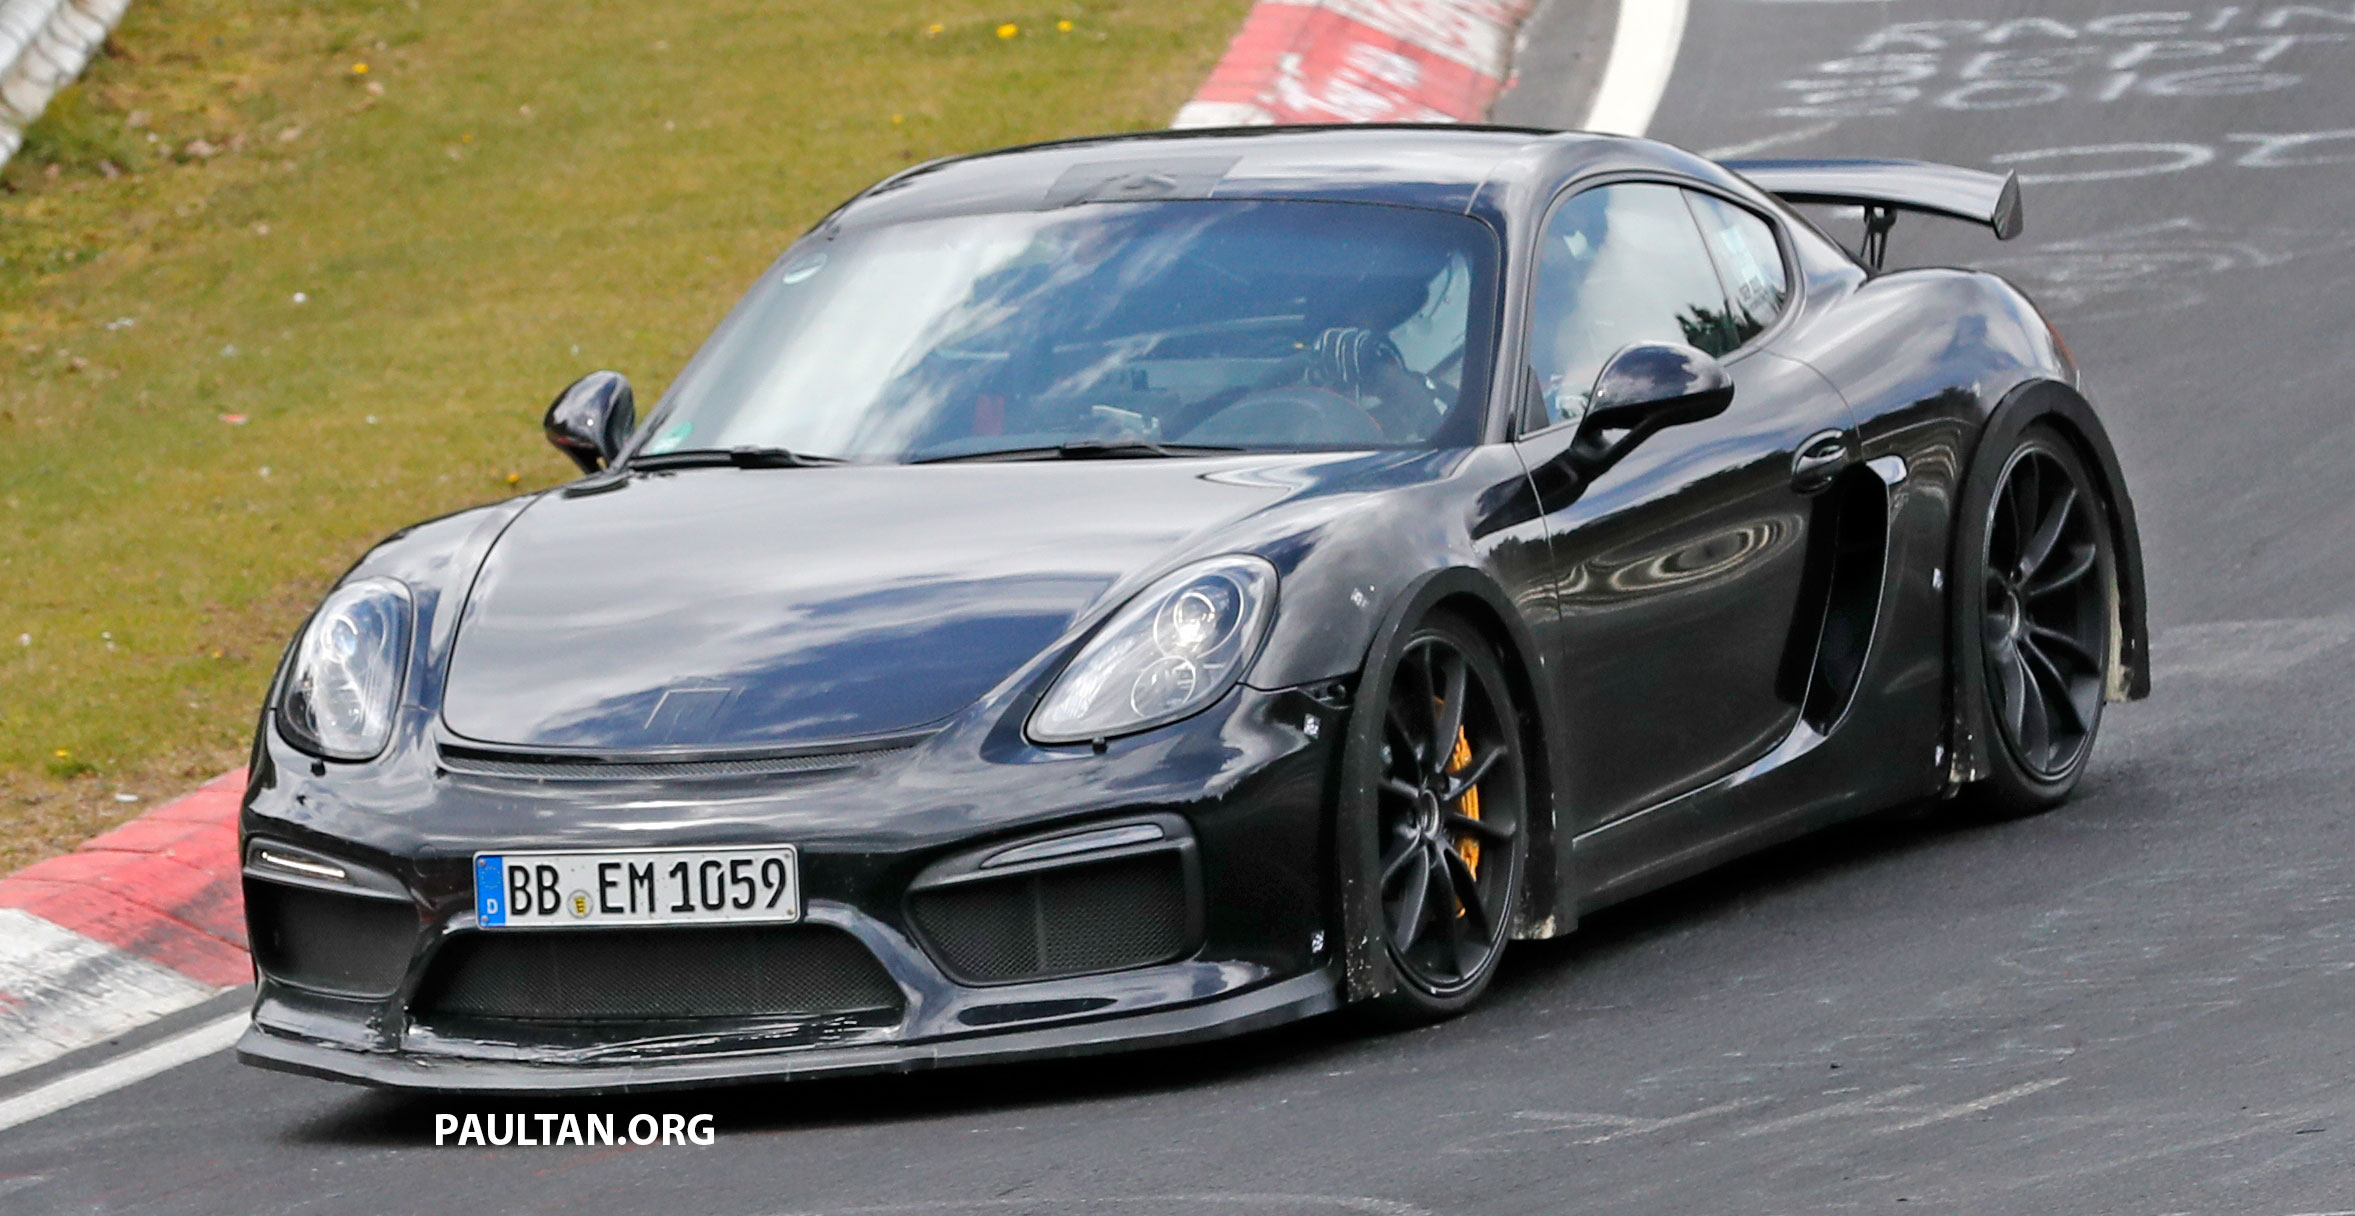 Cayman Gt4 2018 >> SPYSHOTS: Porsche Cayman GT4 RS in the works? Paul Tan - Image 655894